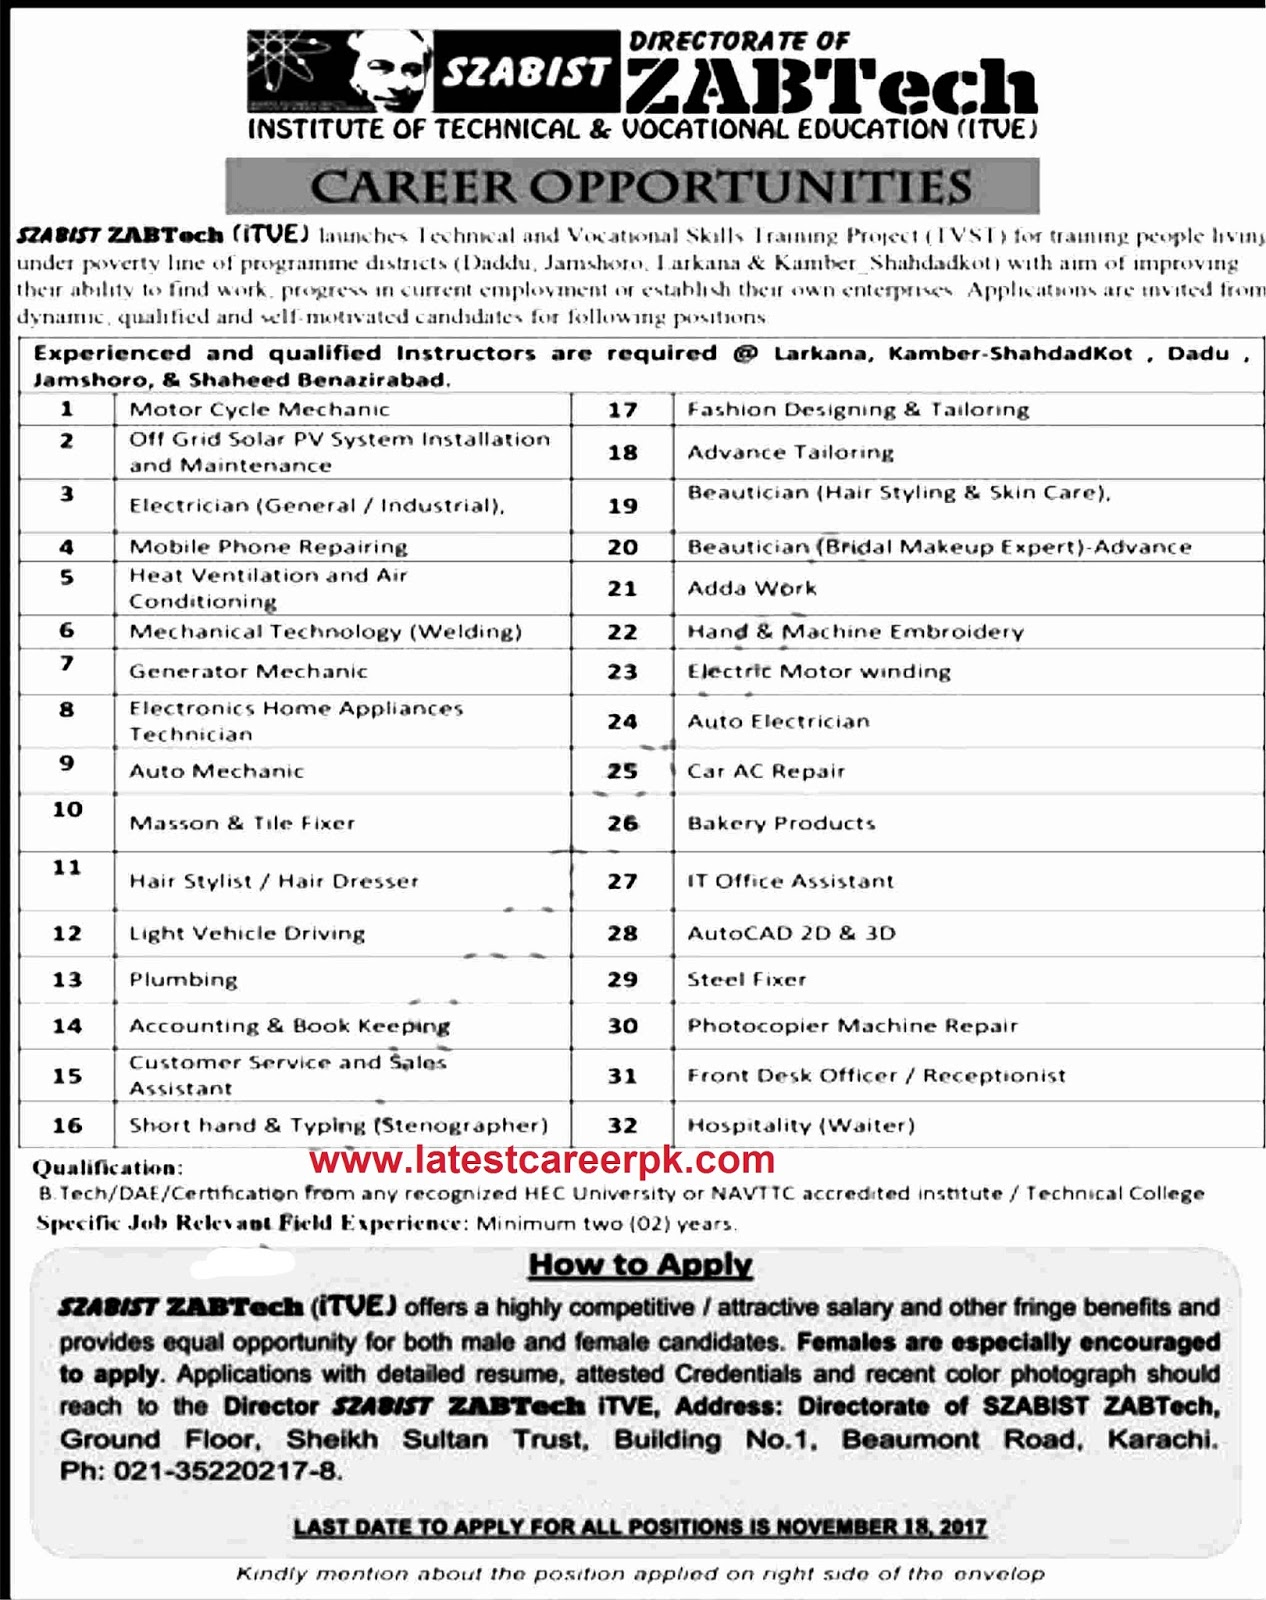 latest career pk 110817 jobs in institute of technical and vocational education itve 08 nov 2017 2017 11 08 archivehtml beautician job description 22